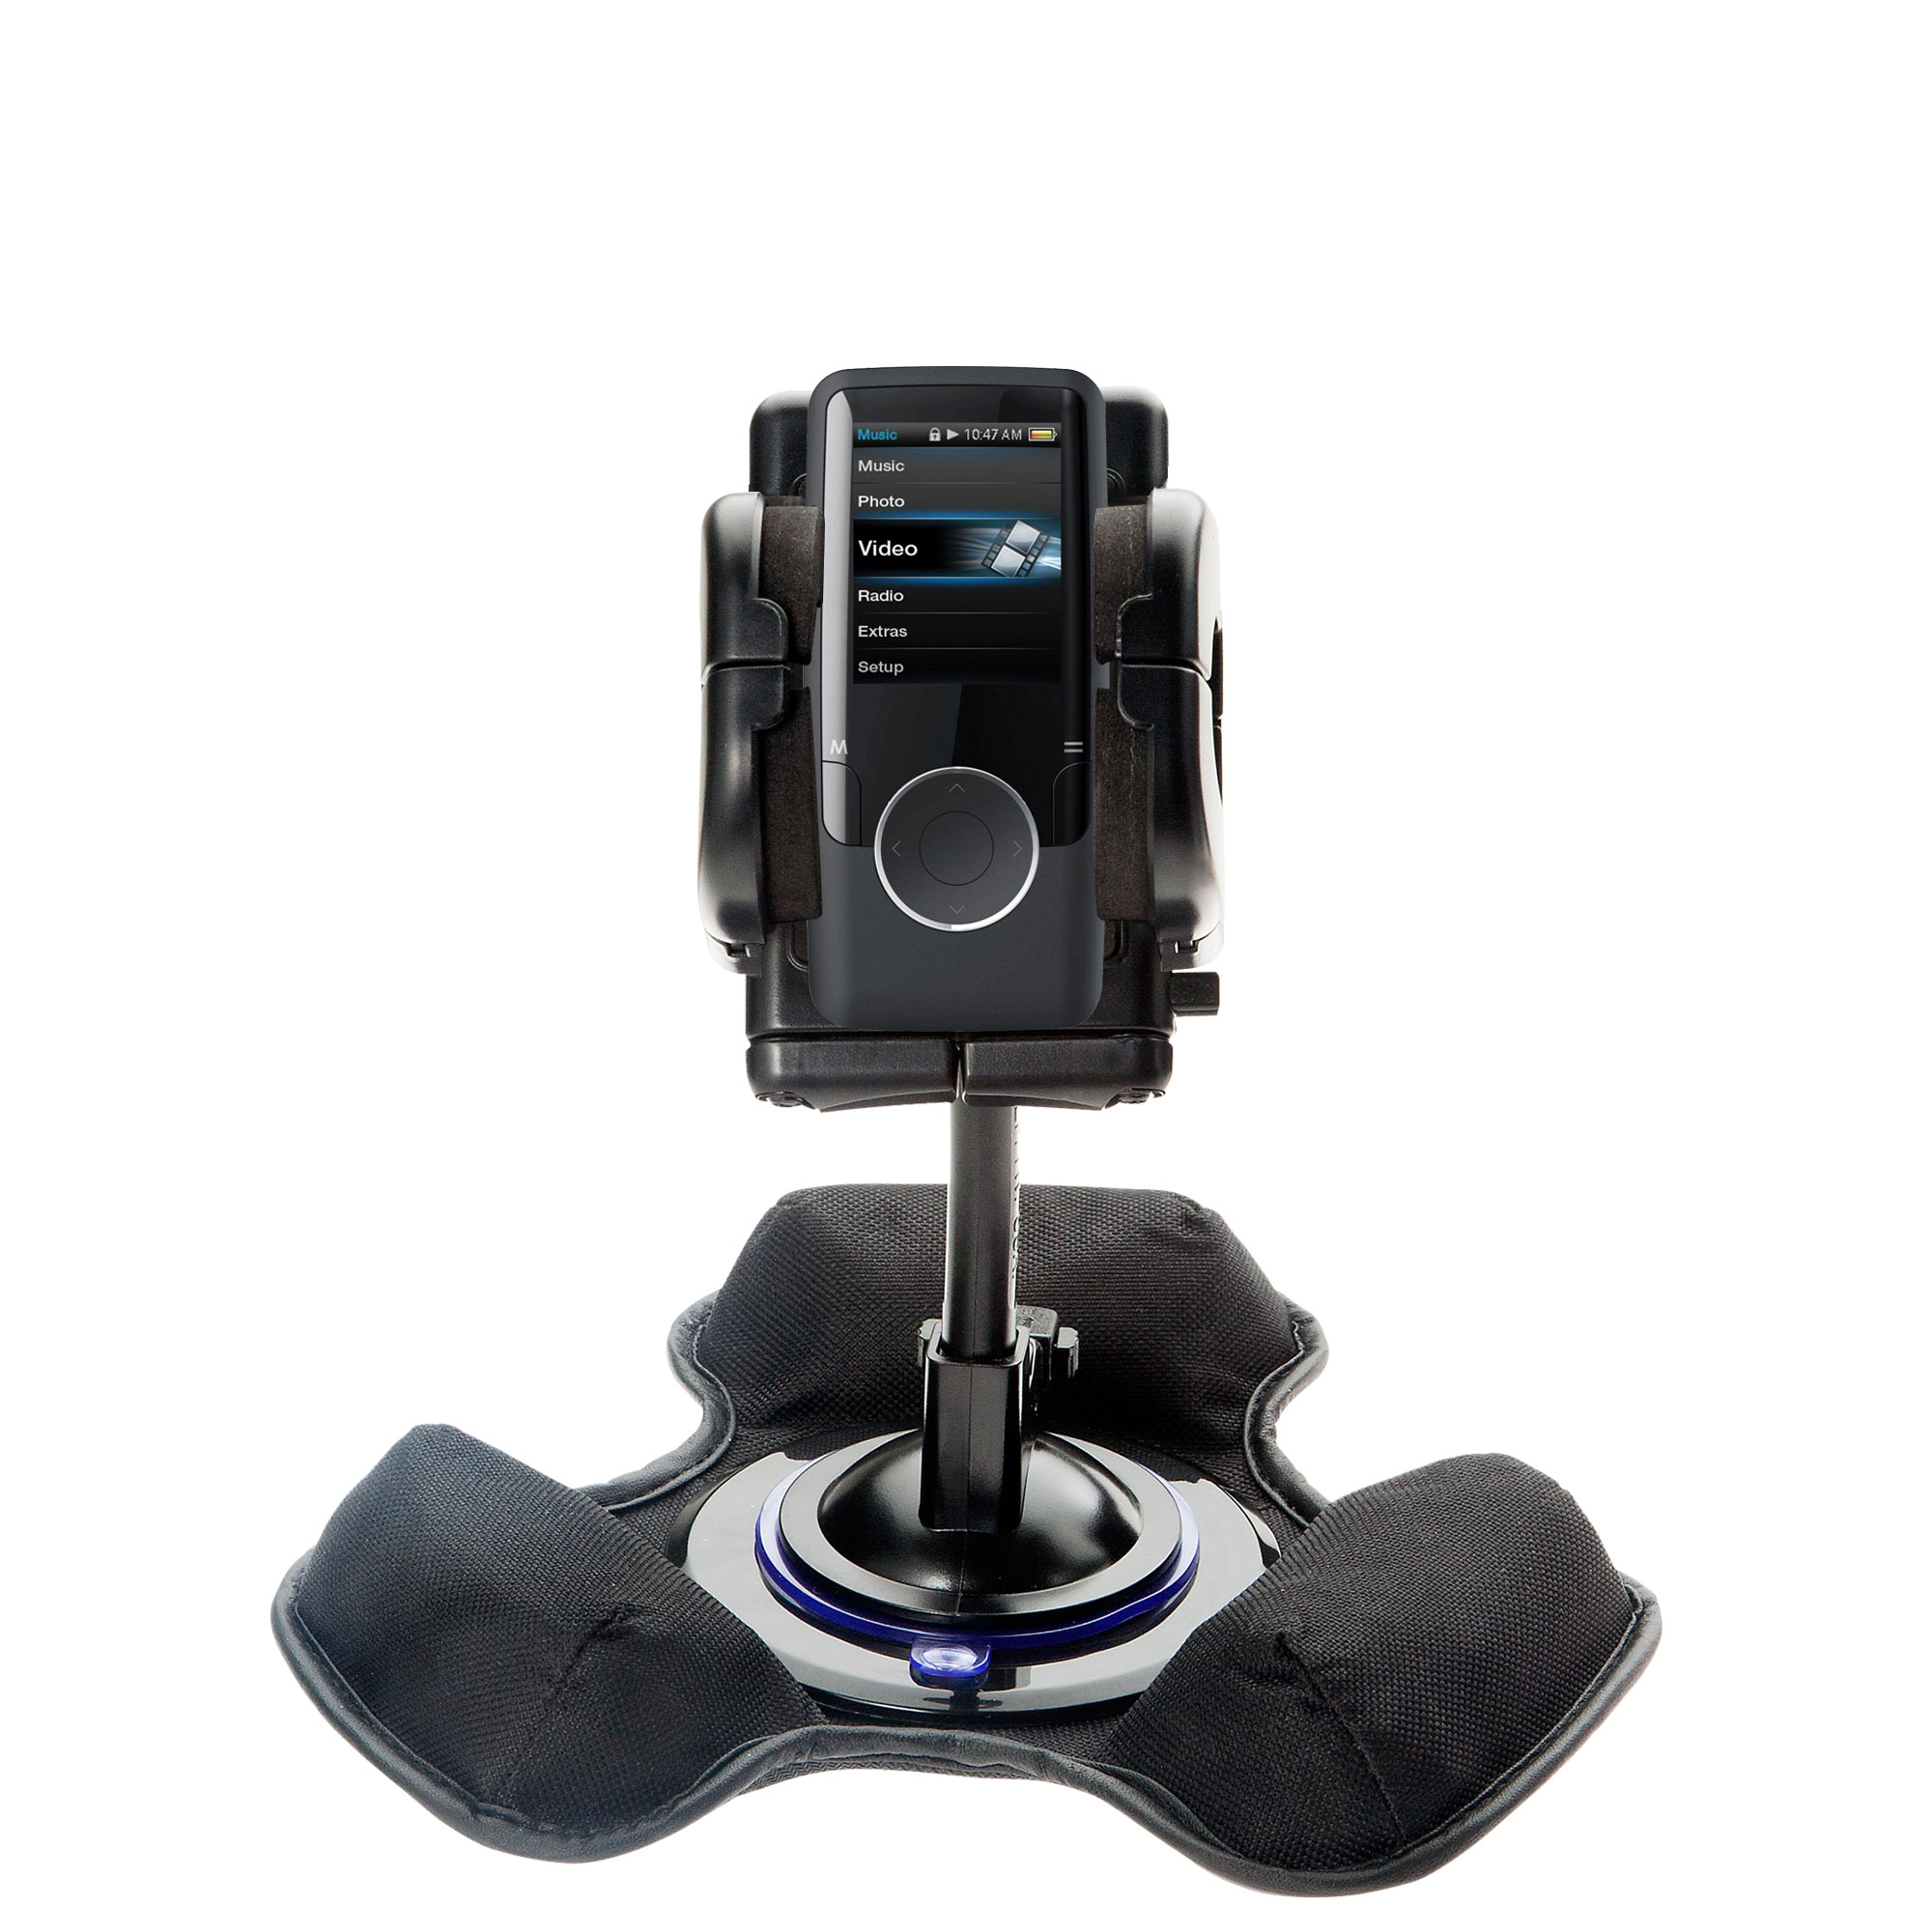 Dash and Windshield Holder compatible with the Coby MP620 Video MP3 Player